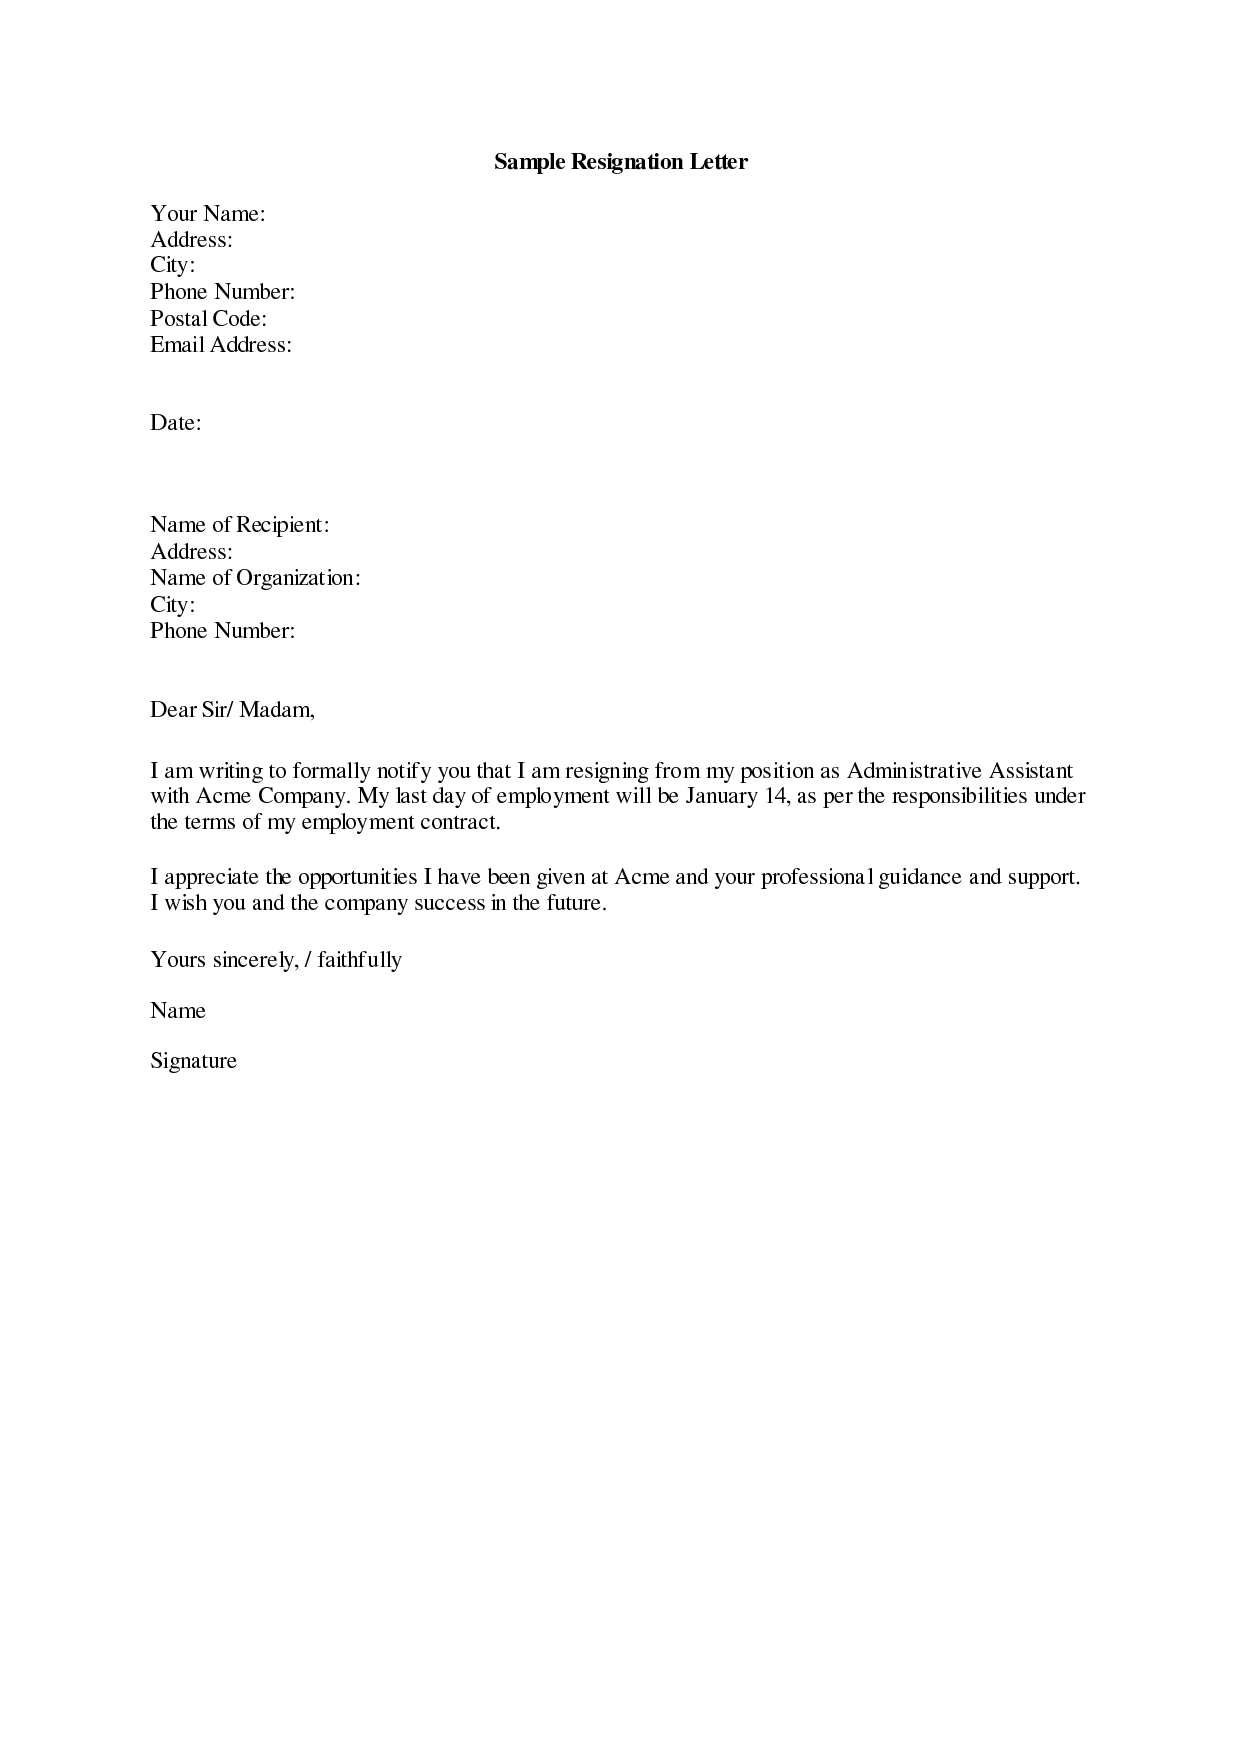 Resignation letter sample 19 letter of resignation ankit resignation letter sample 19 letter of resignation expocarfo Images